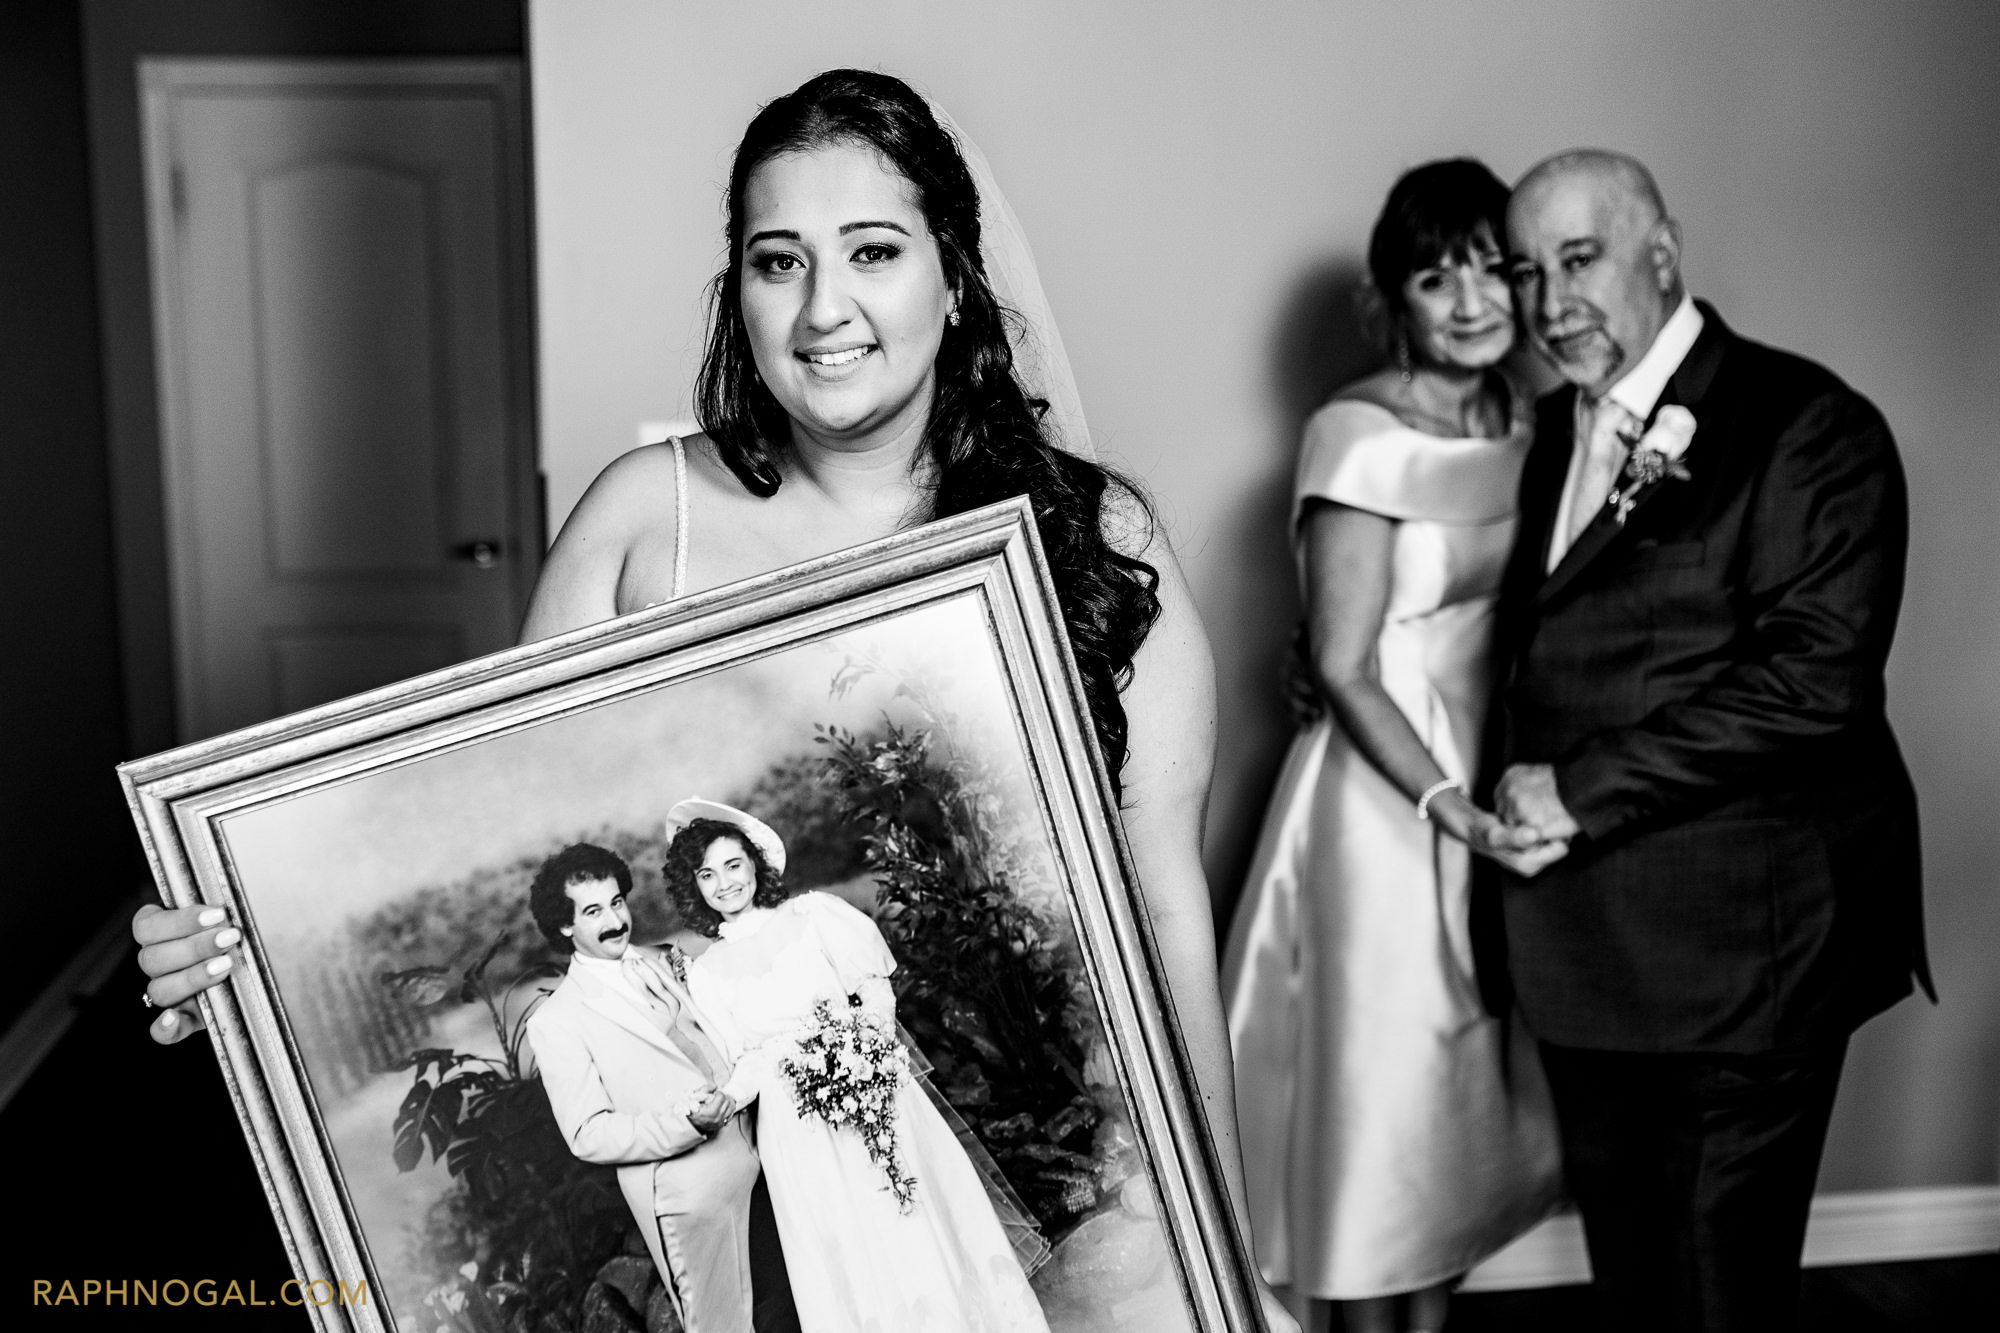 Bride holding photo of parents' wedding day